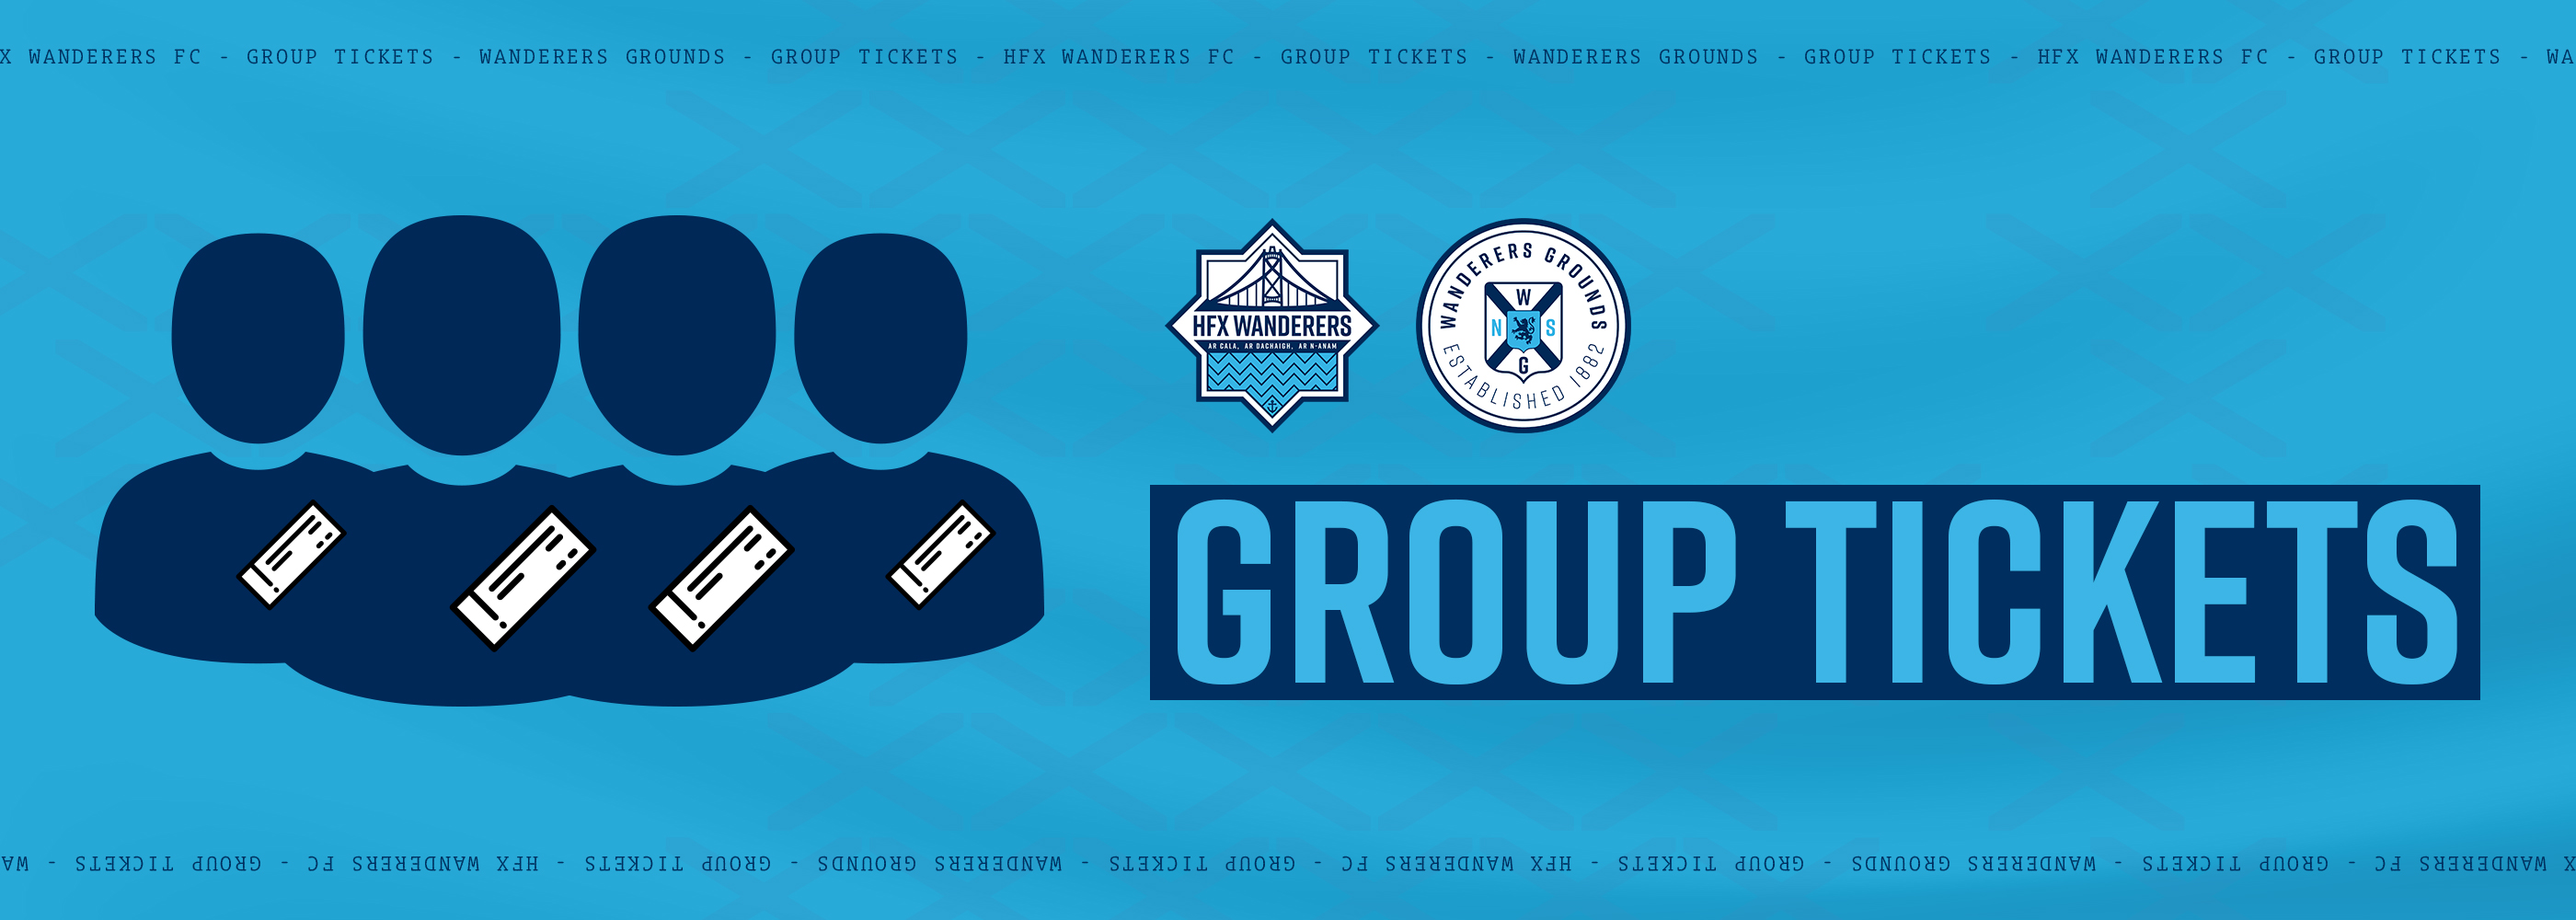 group_featured3